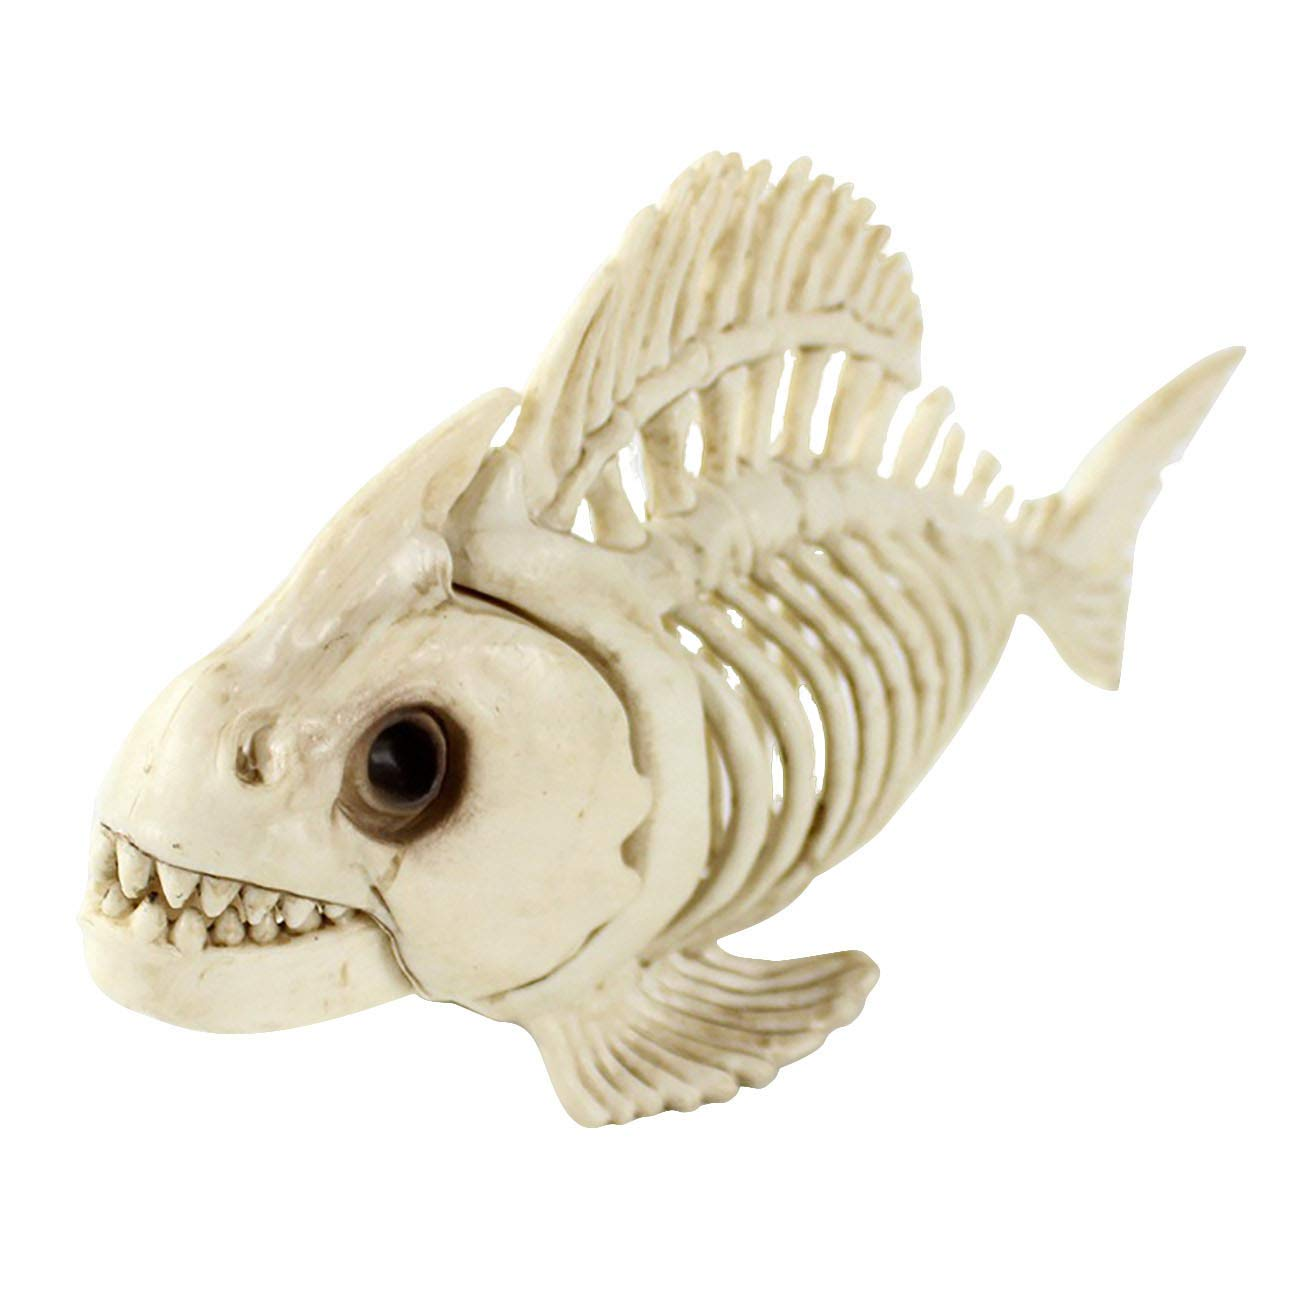 THEE Scary Animal Fish Bones Simulation Skeleton Party Halloween Decoration by THEE